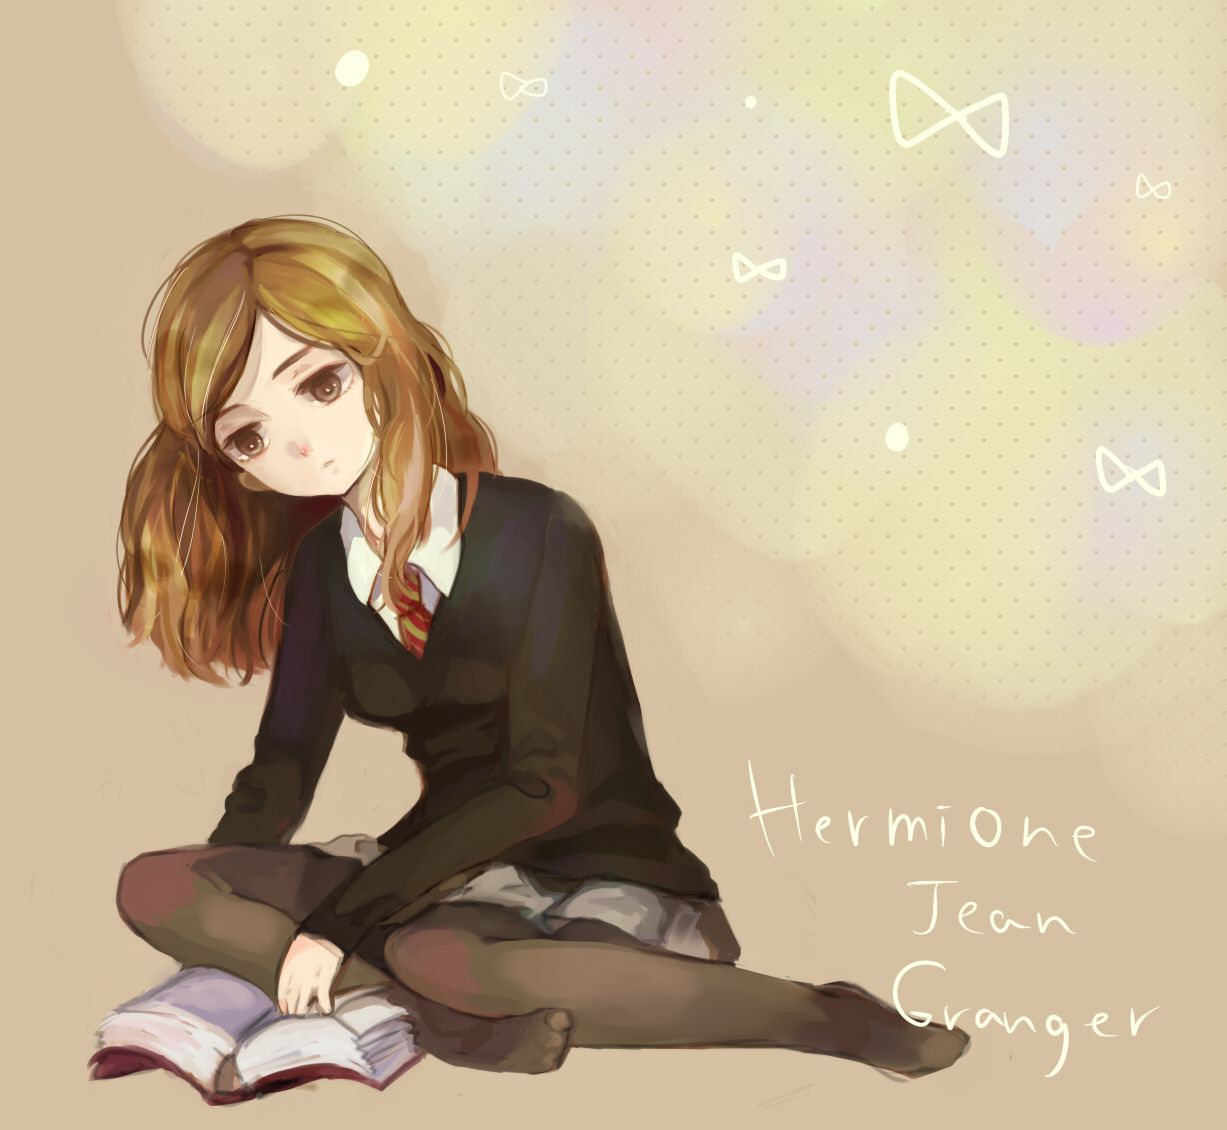 Hermione Anime Wallpapers On Wallpaperdog